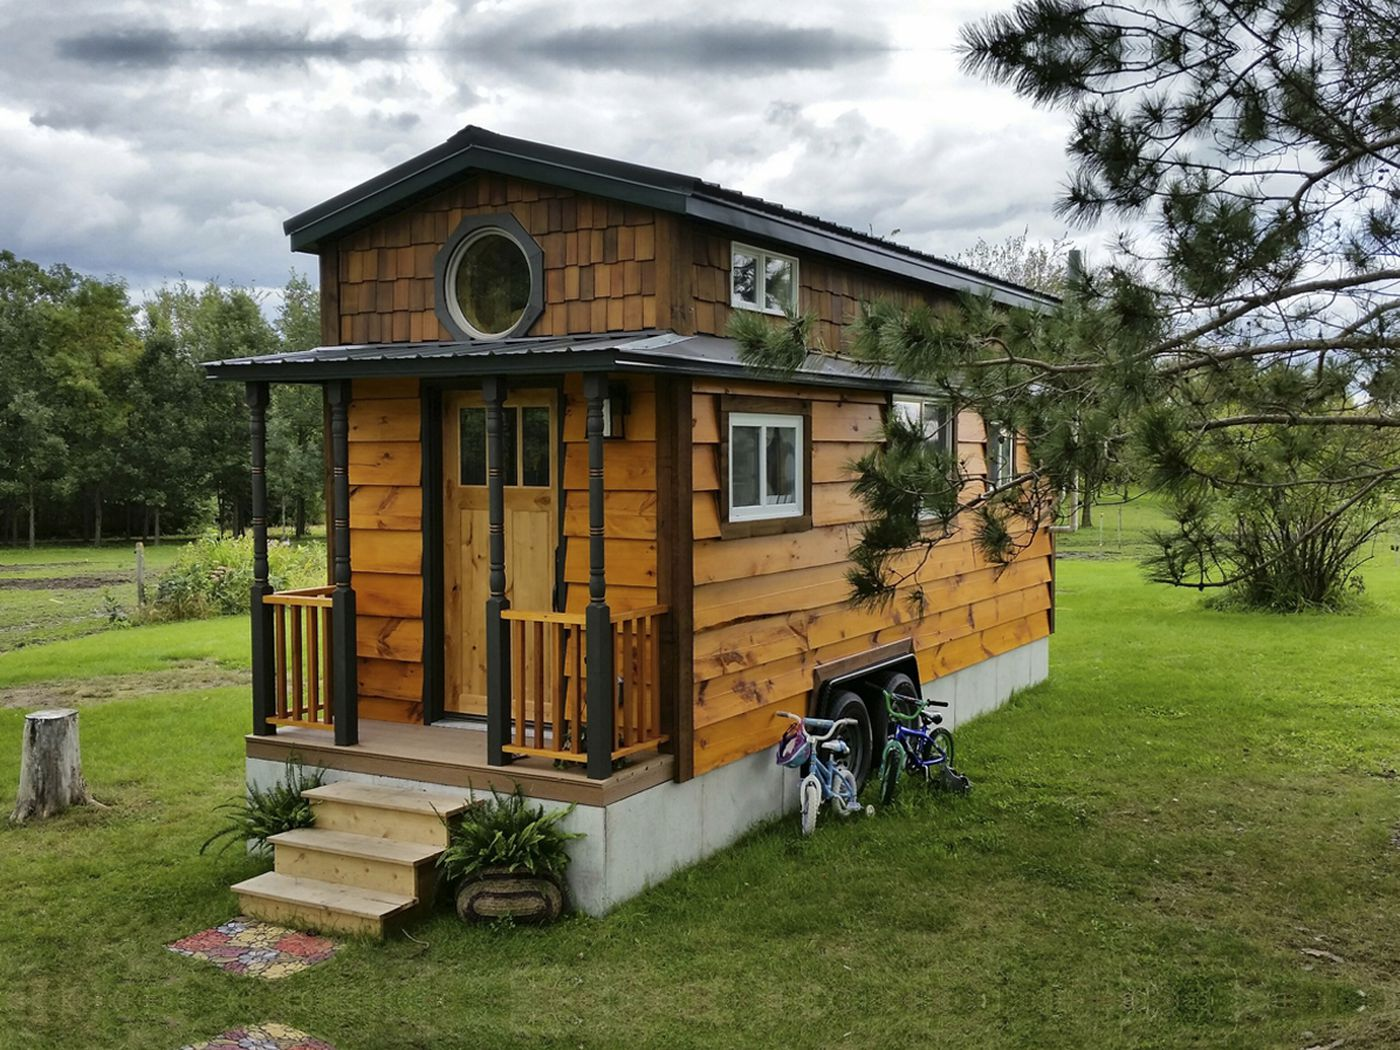 8 Tiny Houses that Have More Storage Than Your House - This Old House